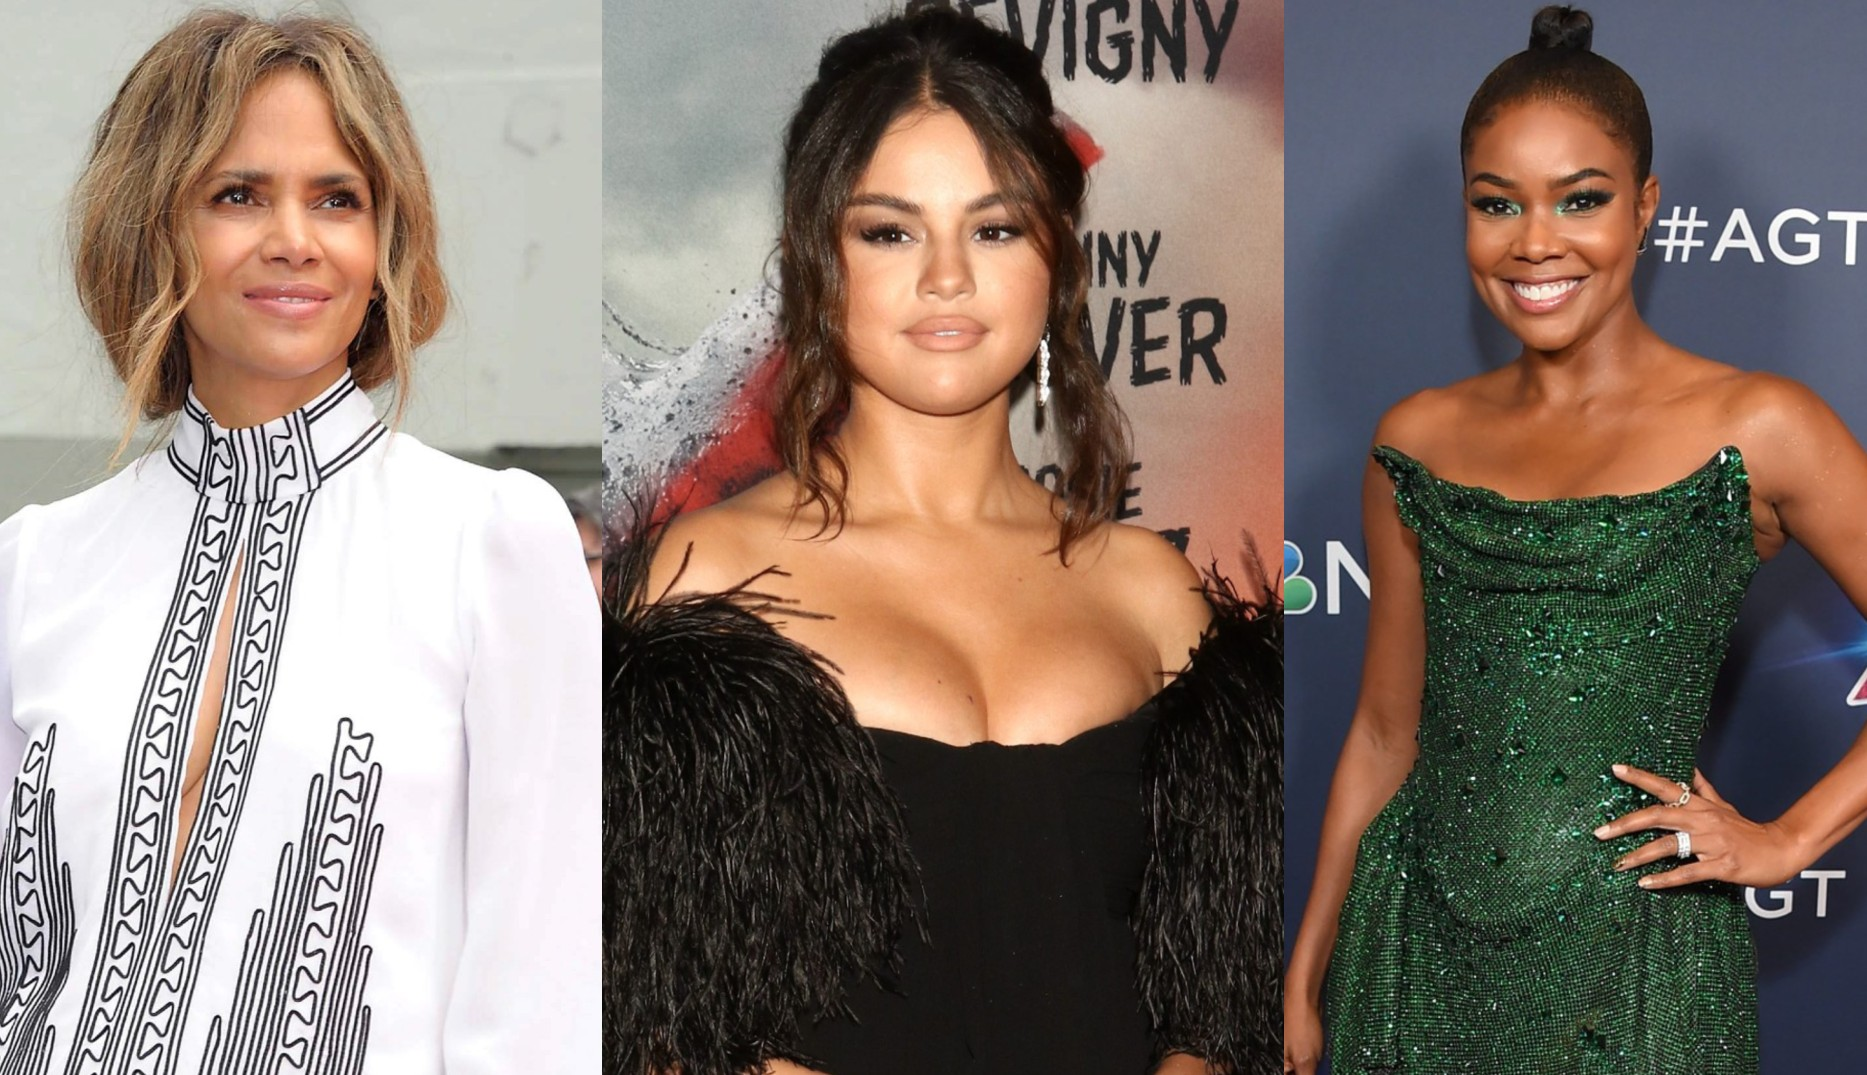 Halle Berry, Selena Gomez, Gabrielle Union And More Sign Open Letter To Support Trans Women And Girls